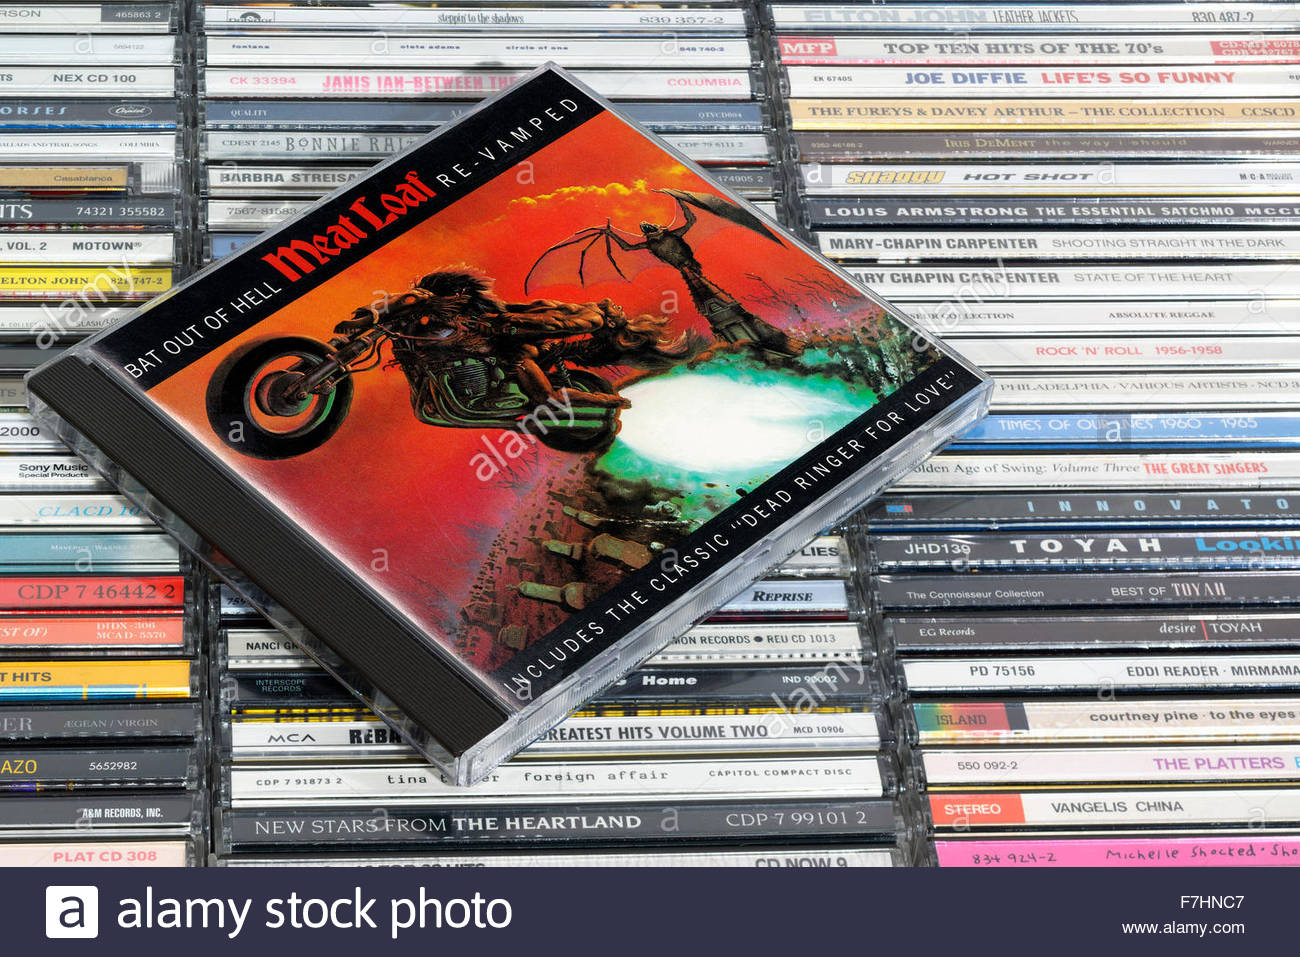 Meat Loaf Album Bat at of hell, piled music CD cases, England. - Stock Image